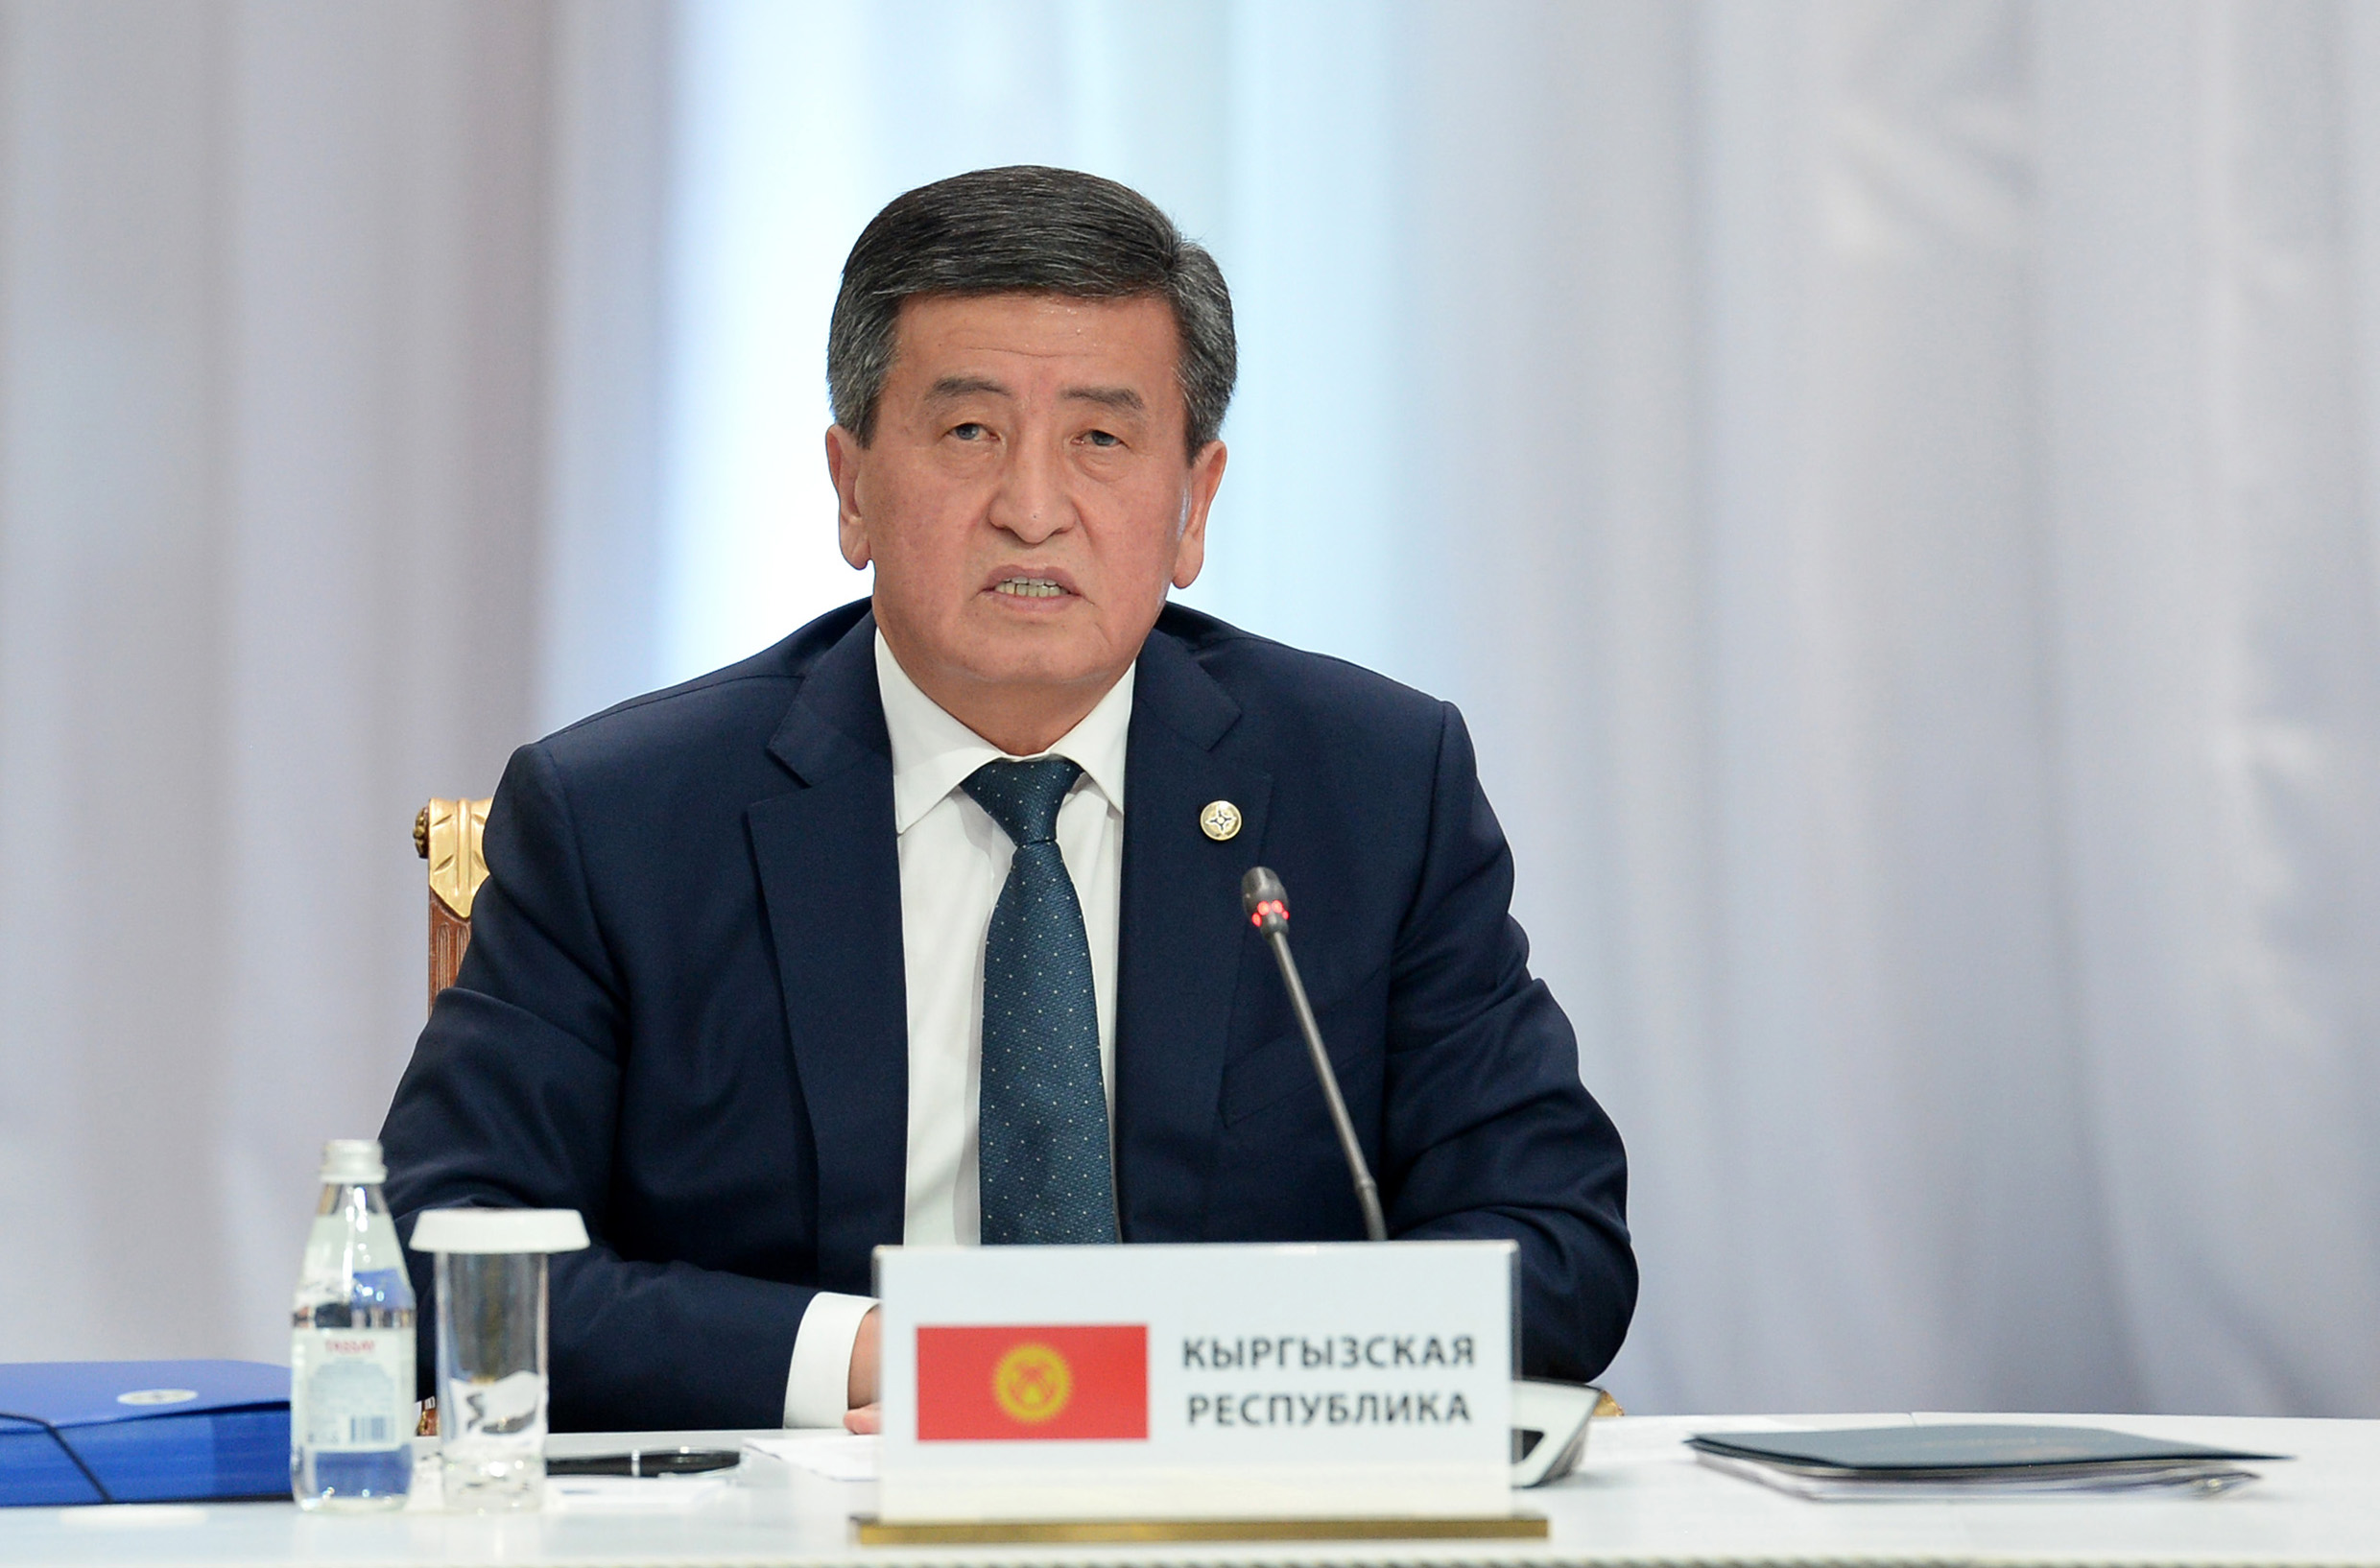 Kyrgyzstan: Officials muted in first words on Xinjiang crackdown